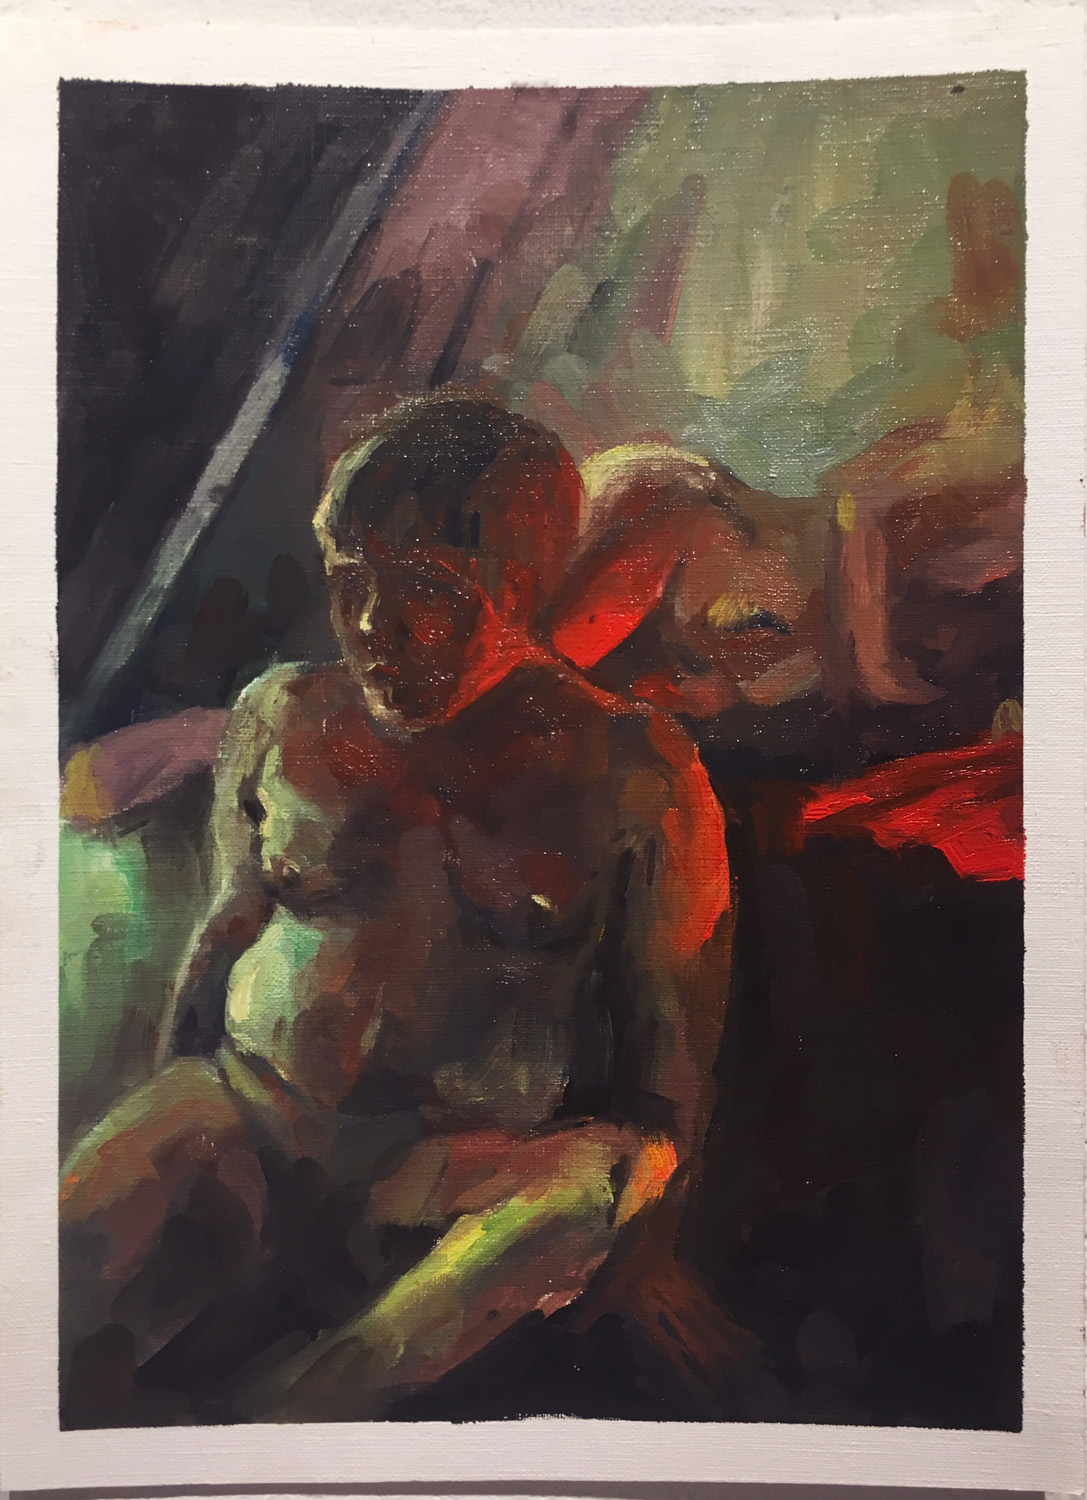 "16. Week 5 in-class assignment on lighting. by Angle L. 4 hours. Oil paint on canvas paper. 2018. 9"" x 12""  Painting Marathon, RISD. Paint the model setup with colored gels on lights."